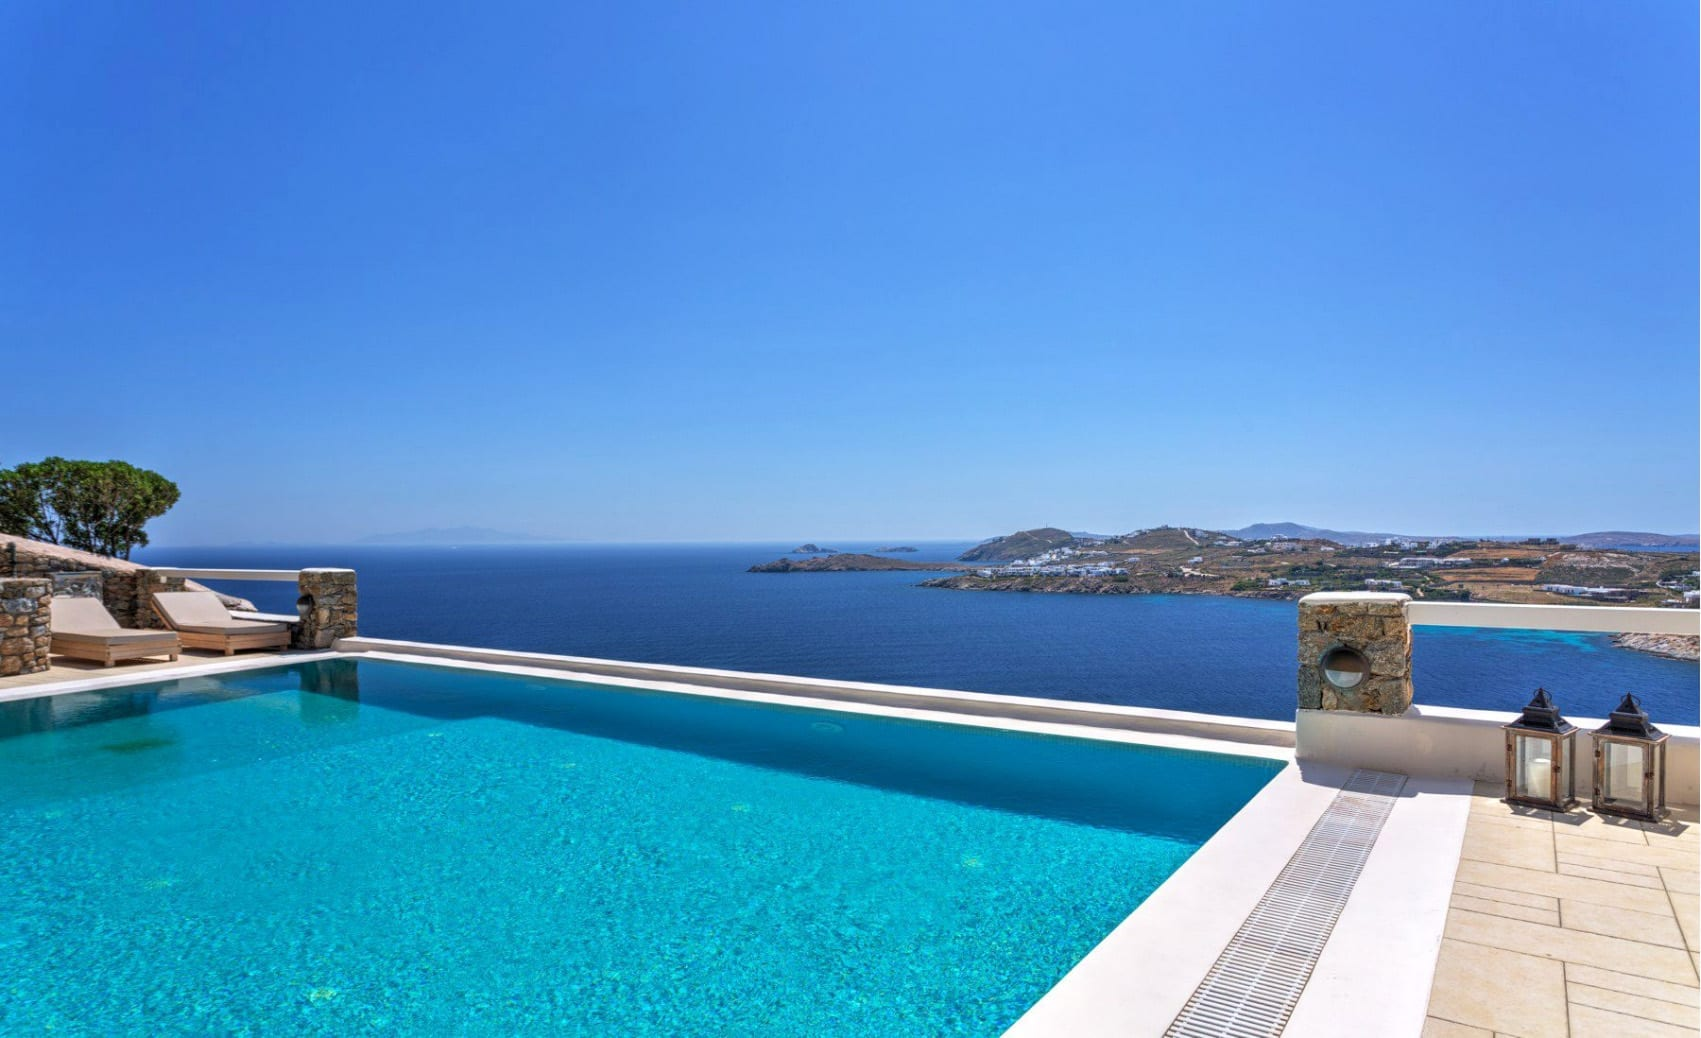 Santa Marina Resort & Villas in Mykonos, Greece